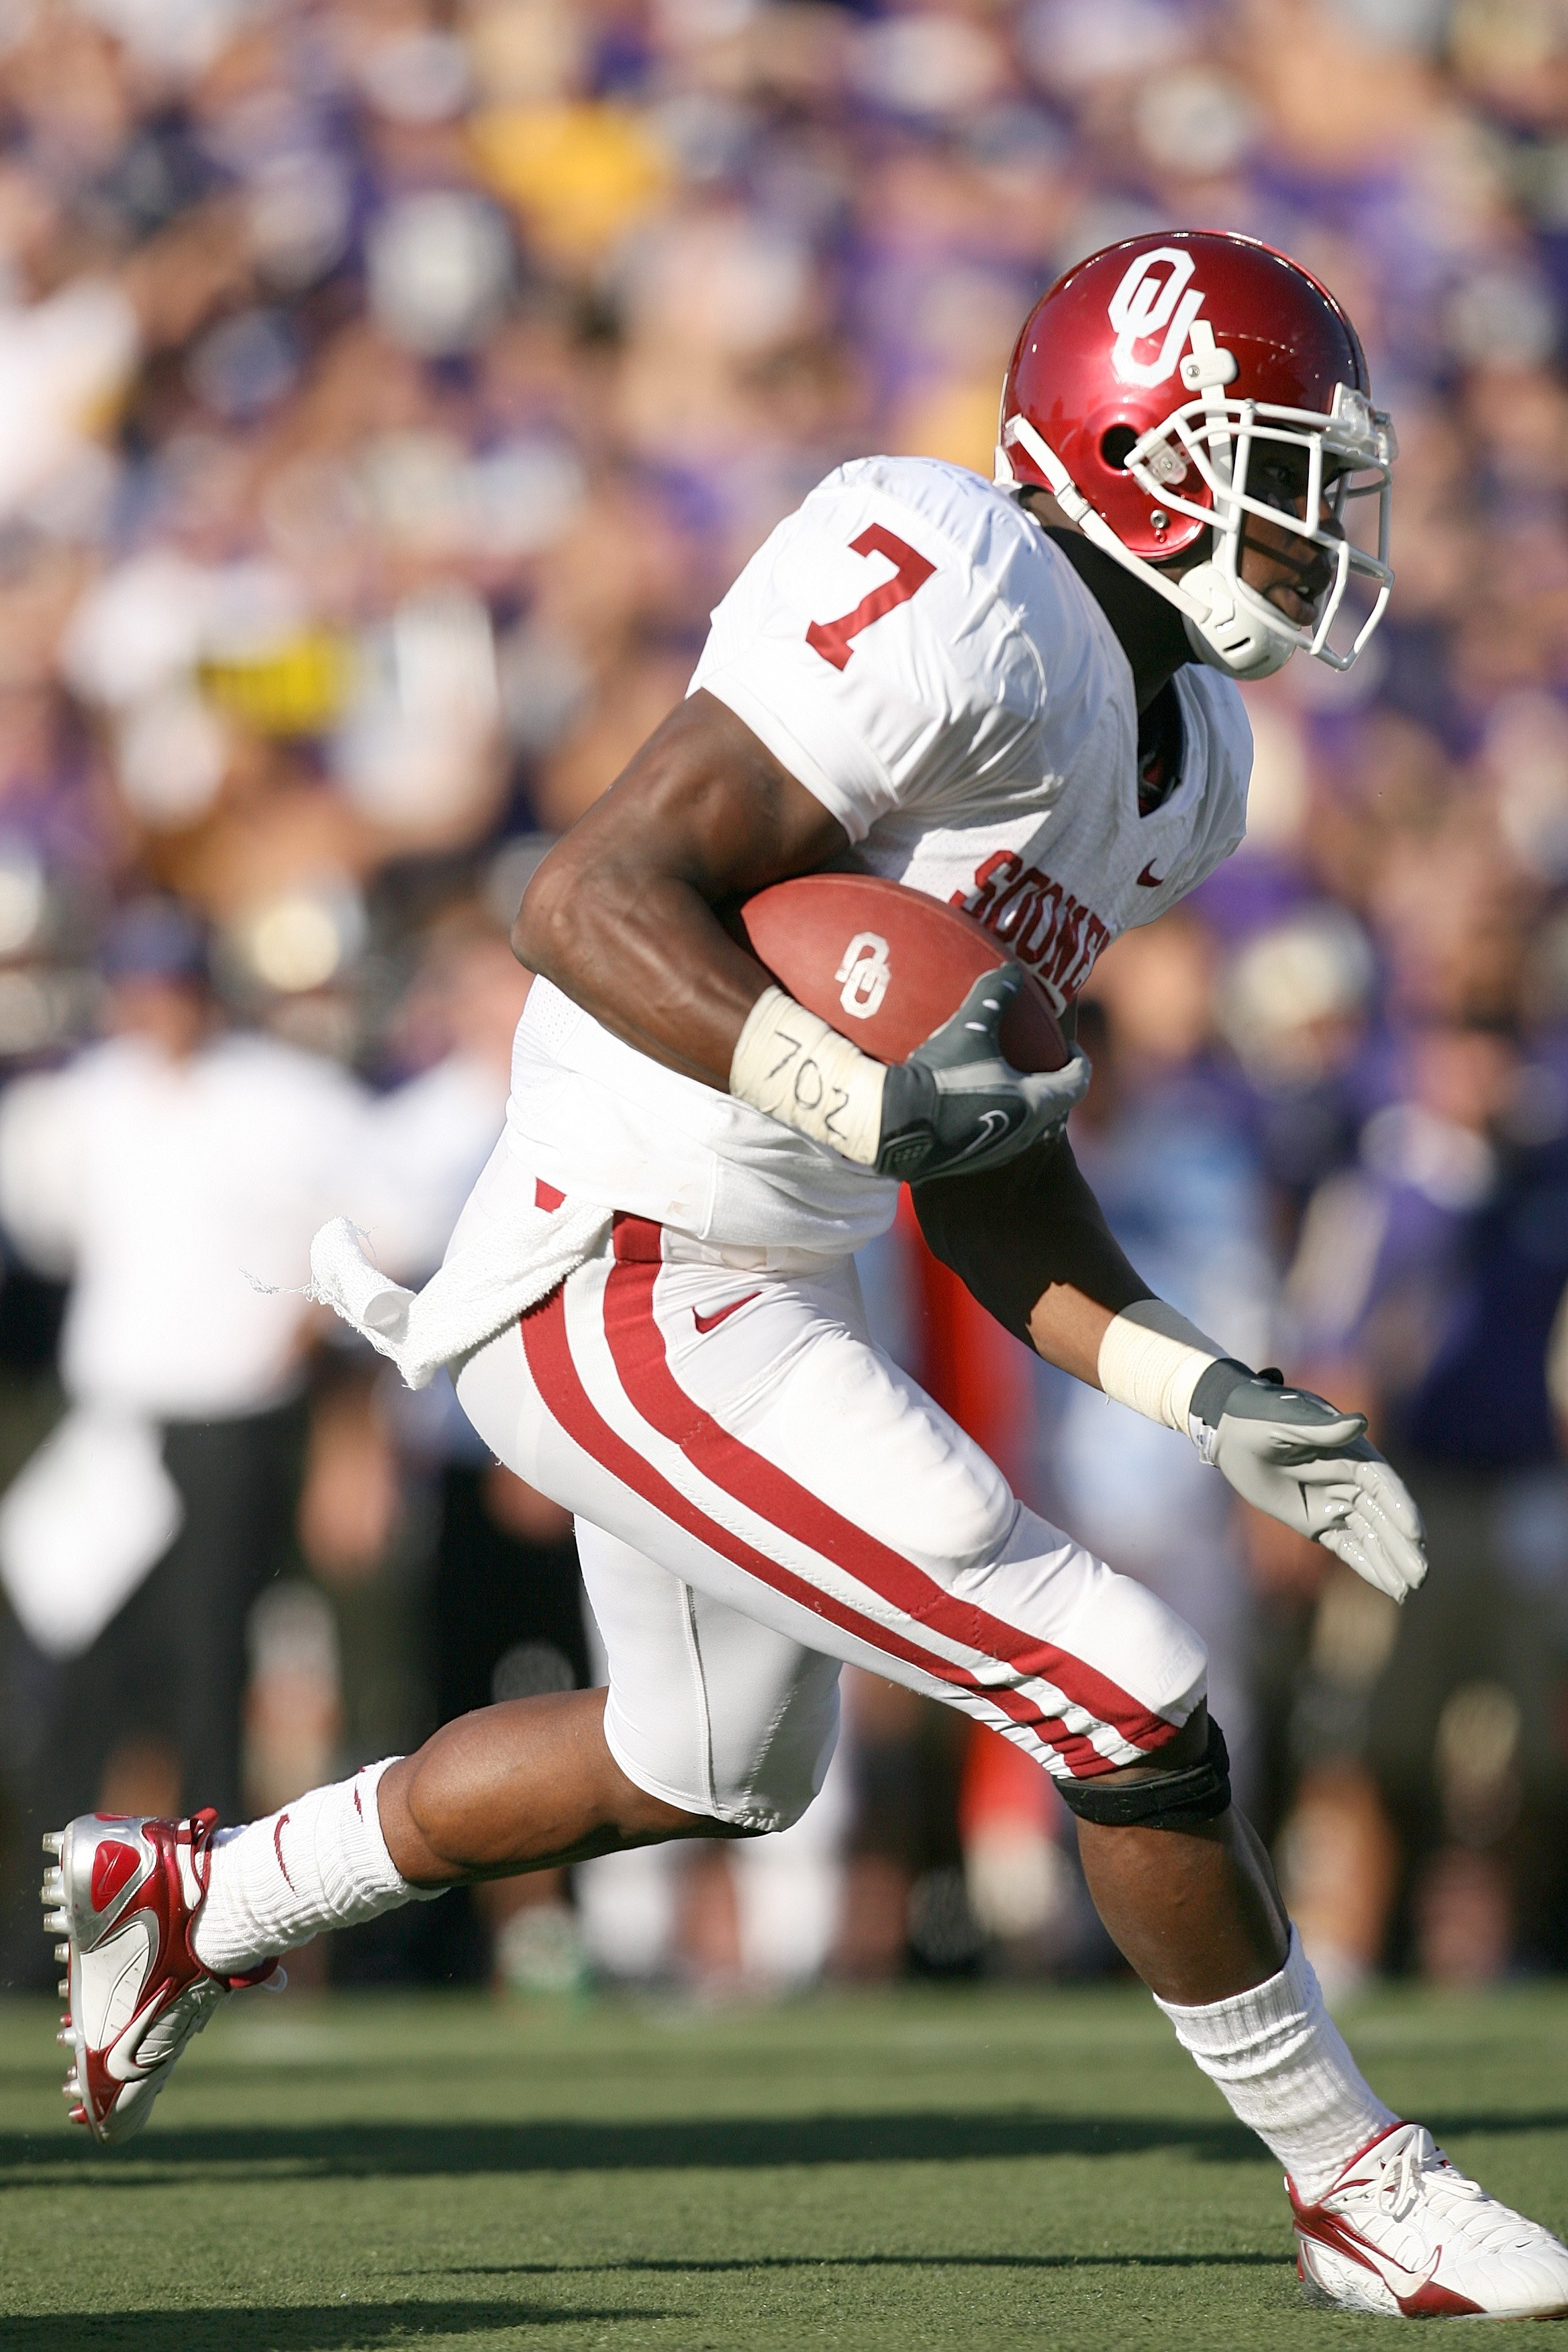 SEATTLE - SEPTEMBER 13:  Running back DeMarco Murray #7 of the Oklahoma Sooners runs with the ball during the game against the Washington Huskies on September 13, 2008 at Husky Stadium in Seattle, Washington. The Sooners defeated the Huskies 55-14.(Photo